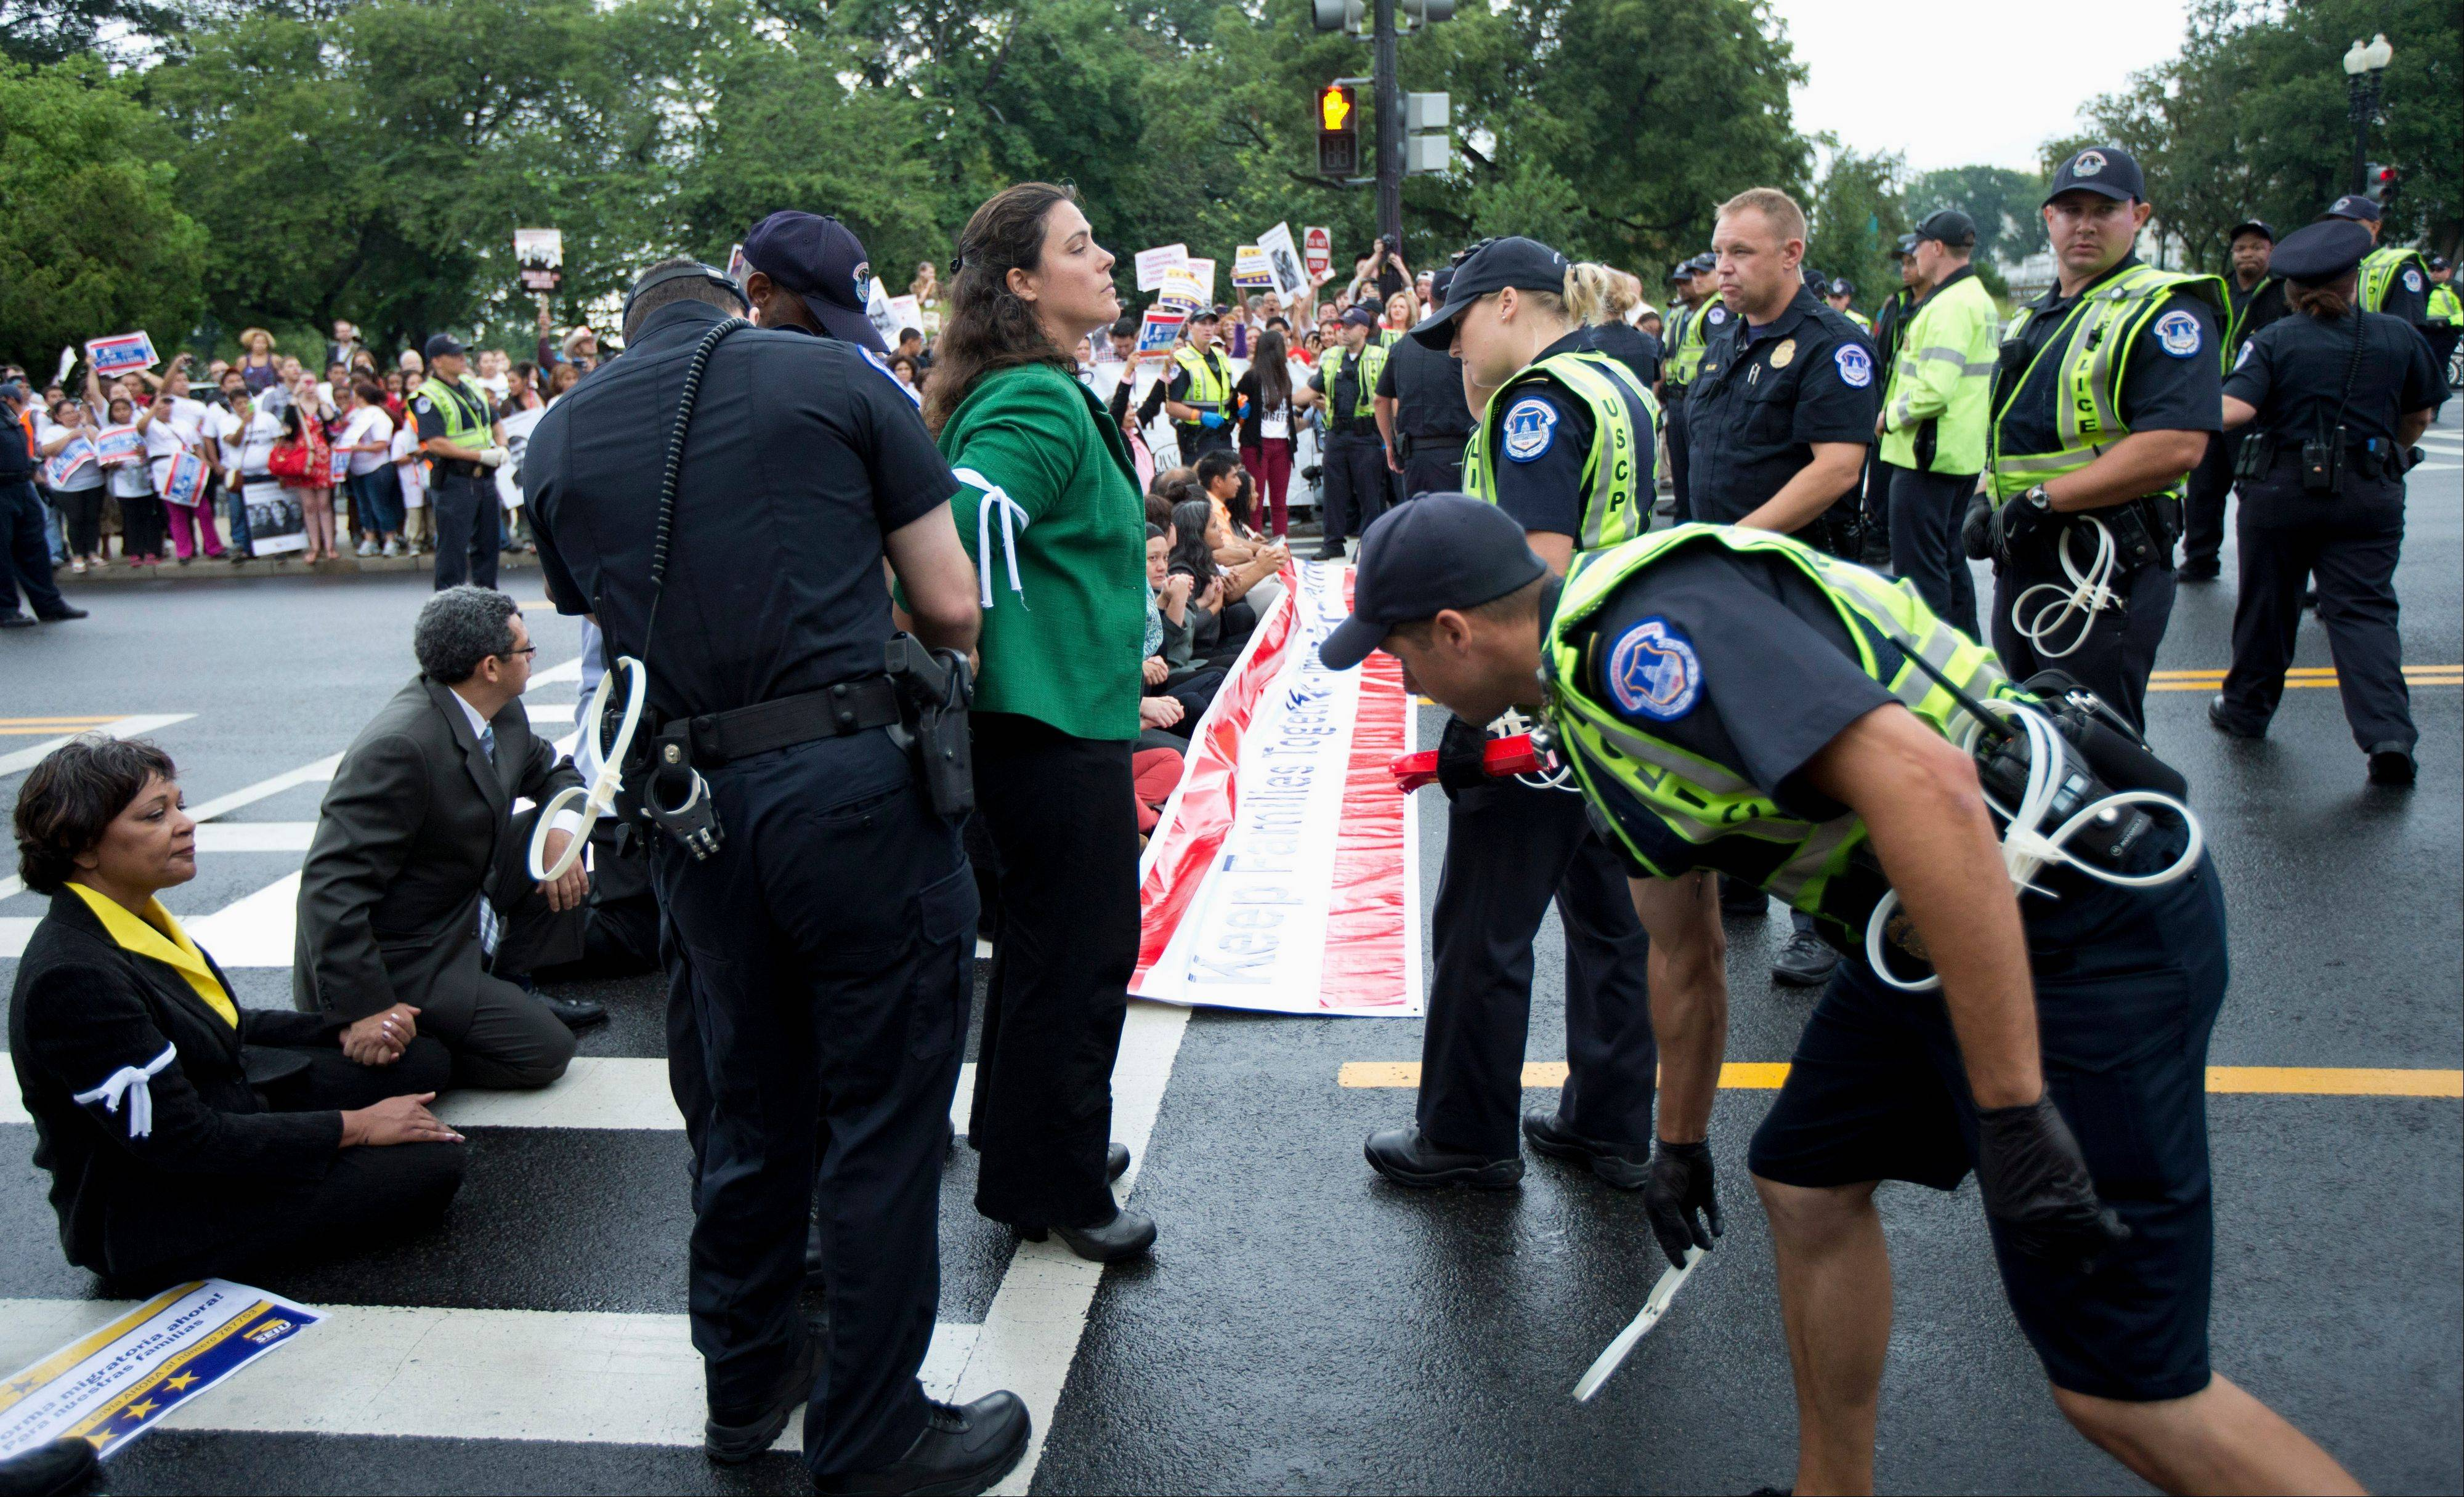 Capitol Hill police officers arrest immigration reform protesters as they blocked a street on Capitol Hill in Washington, Thursday, Aug. 1, 2013.